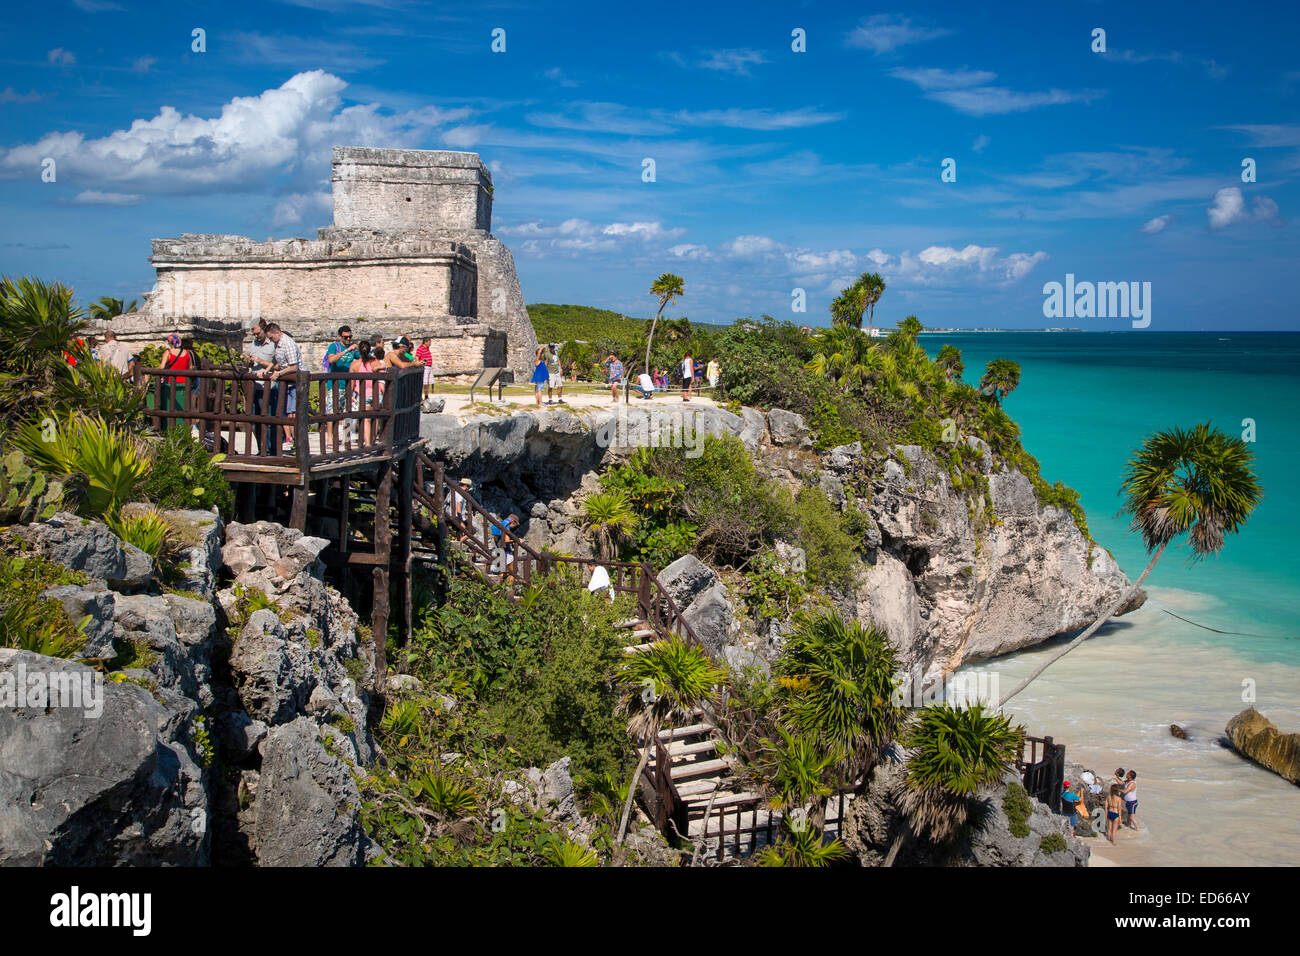 Tourists visiting ruins of the Mayan temple grounds at Tulum, Quintana Roo, Yucatan, Mexico - Stock Image